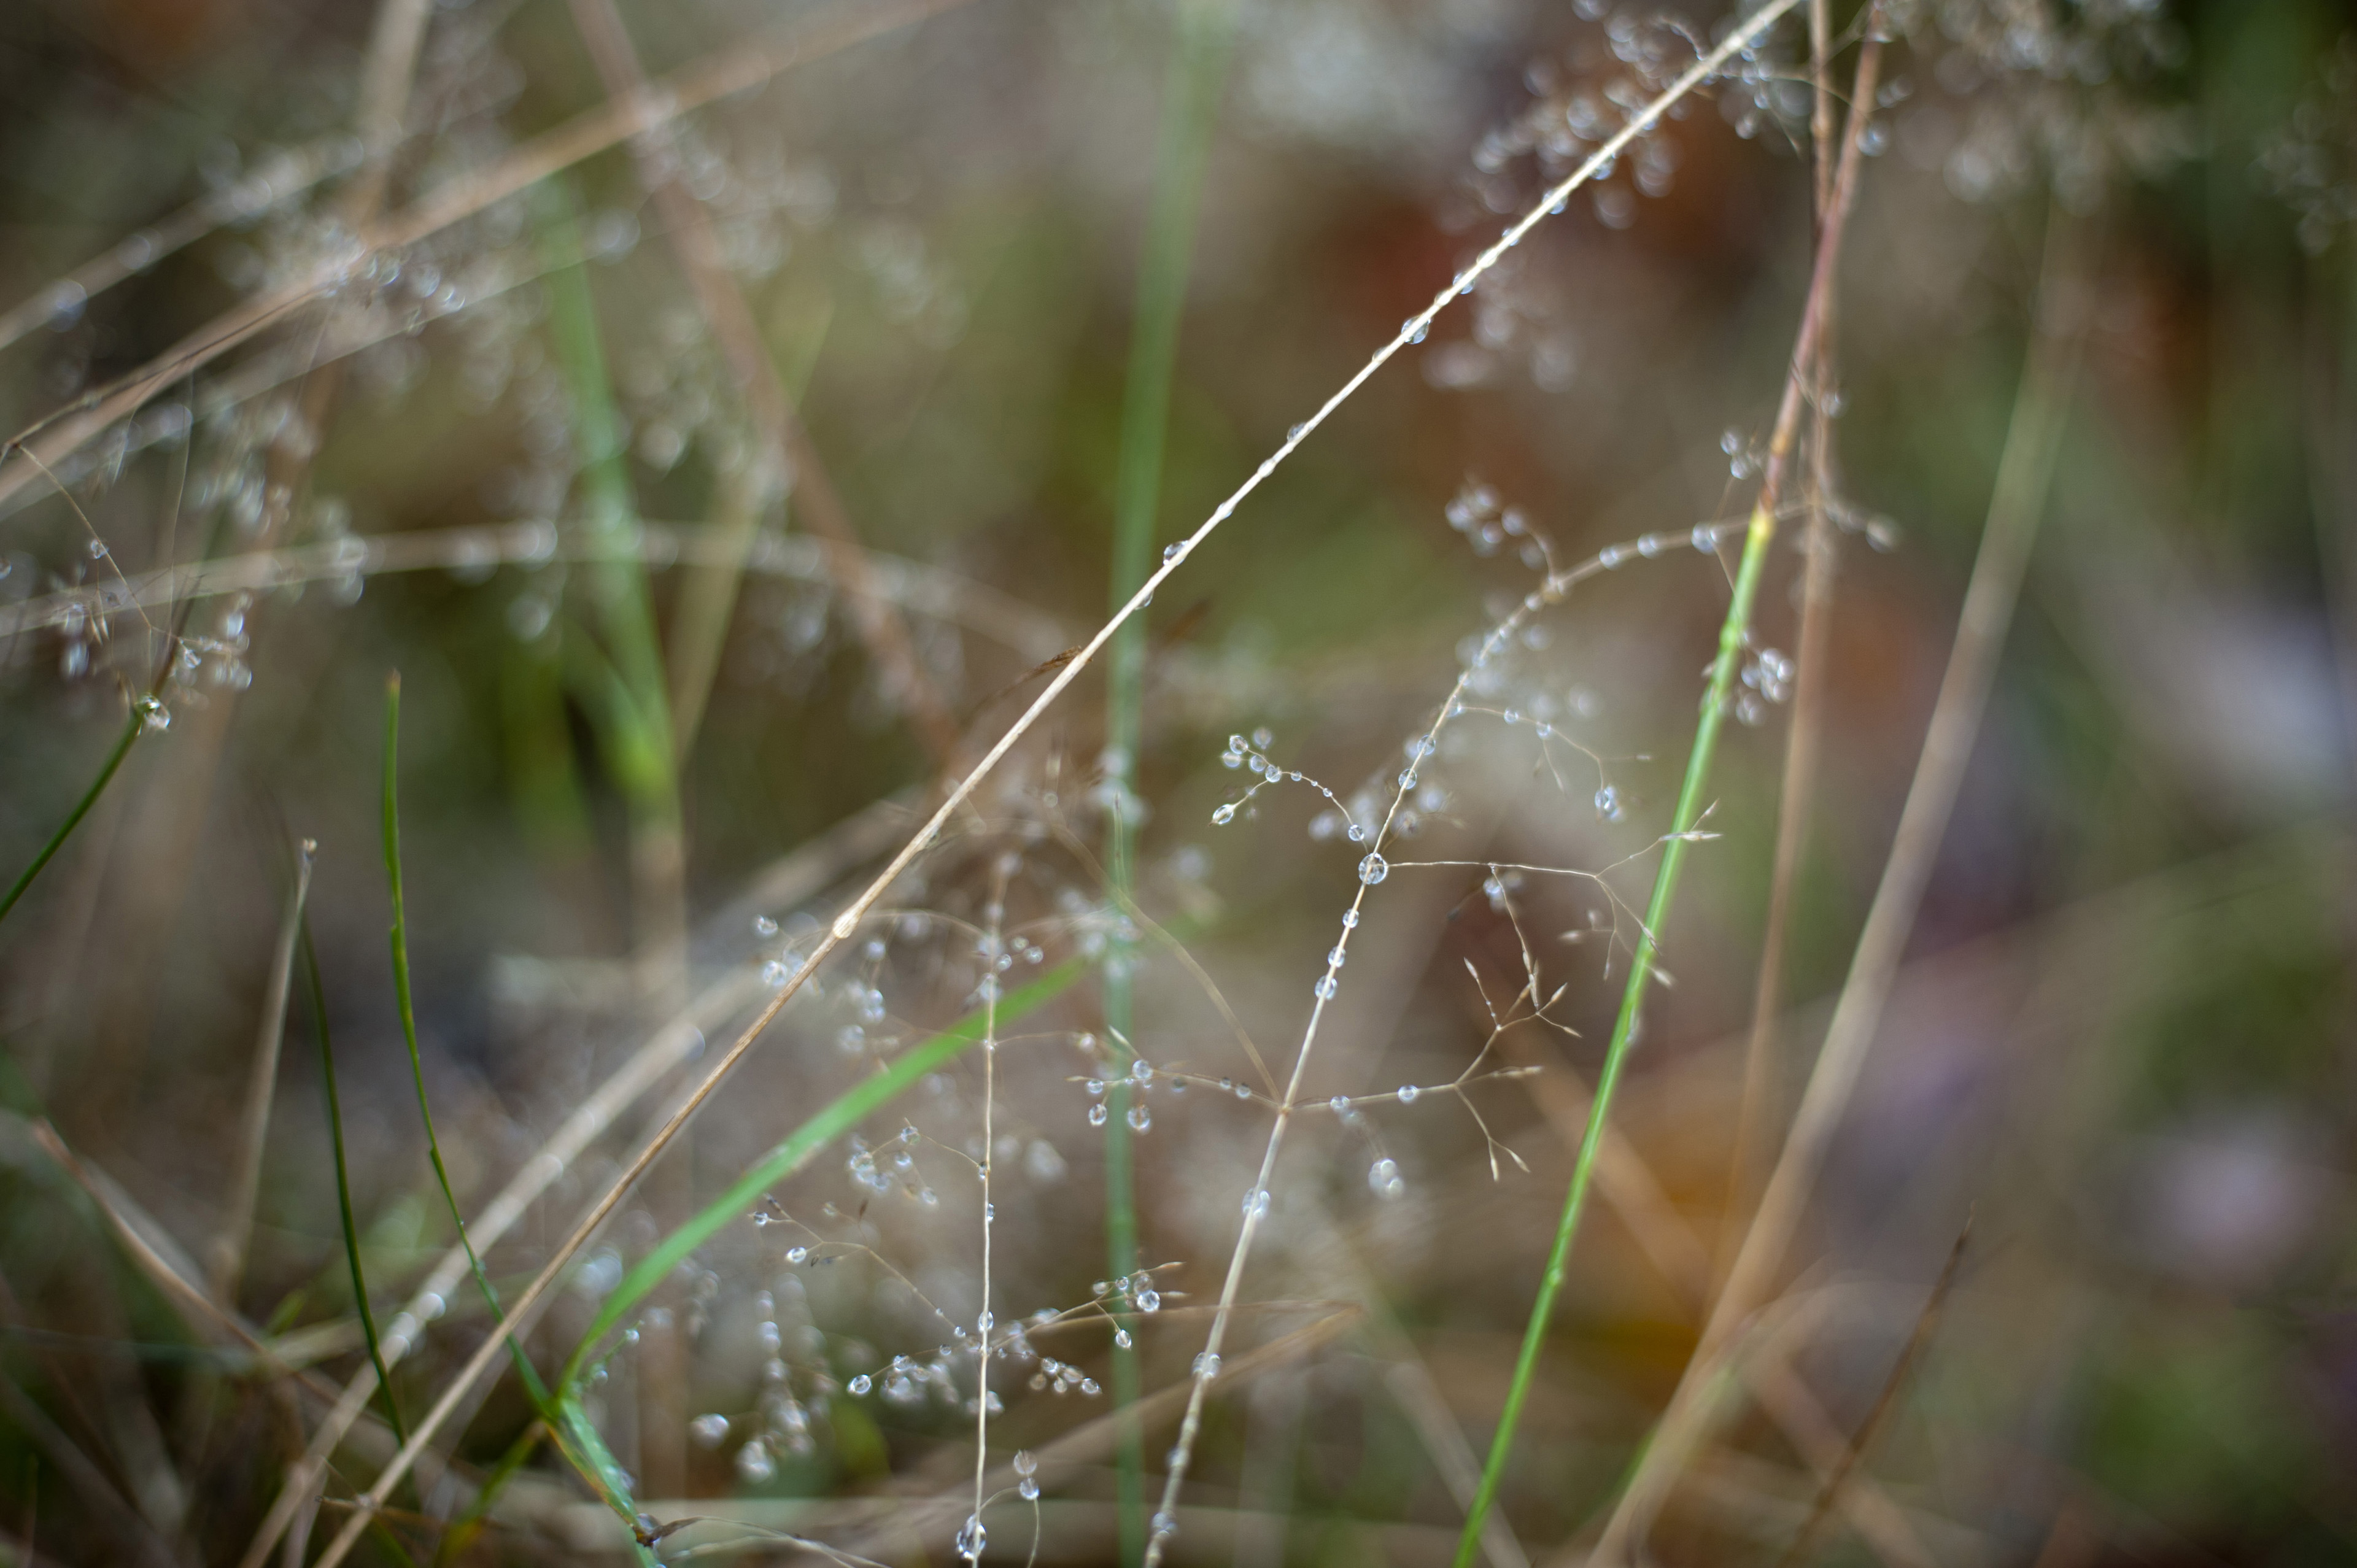 delicate moring dew drops on grasses growing in a meadow